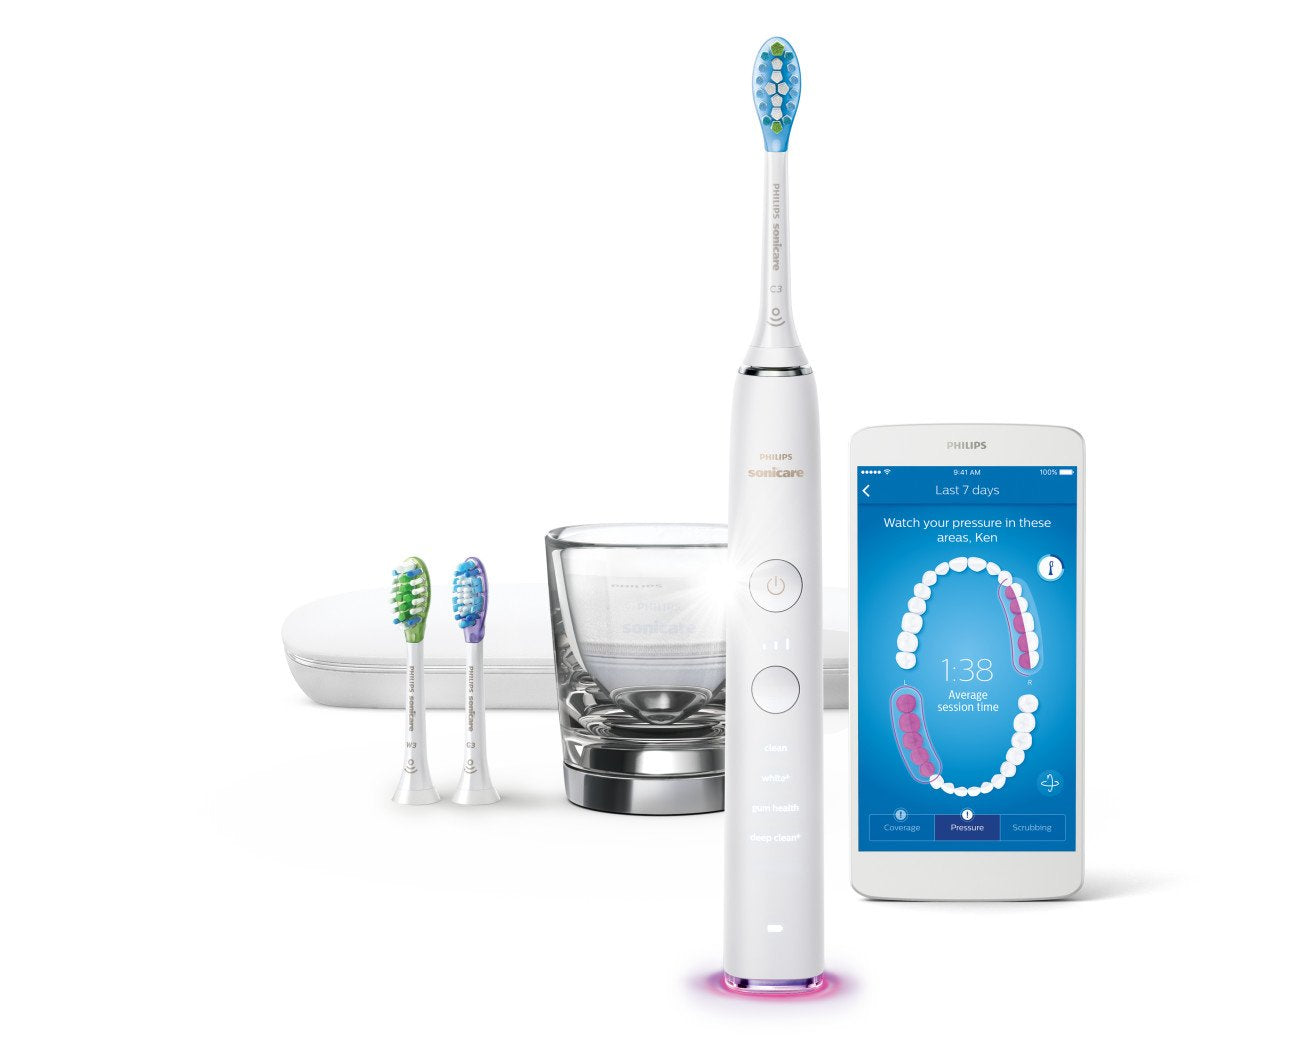 Philips Sonicare DiamondClean Smart Electric, Rechargeable toothbrush for Complete Oral Care